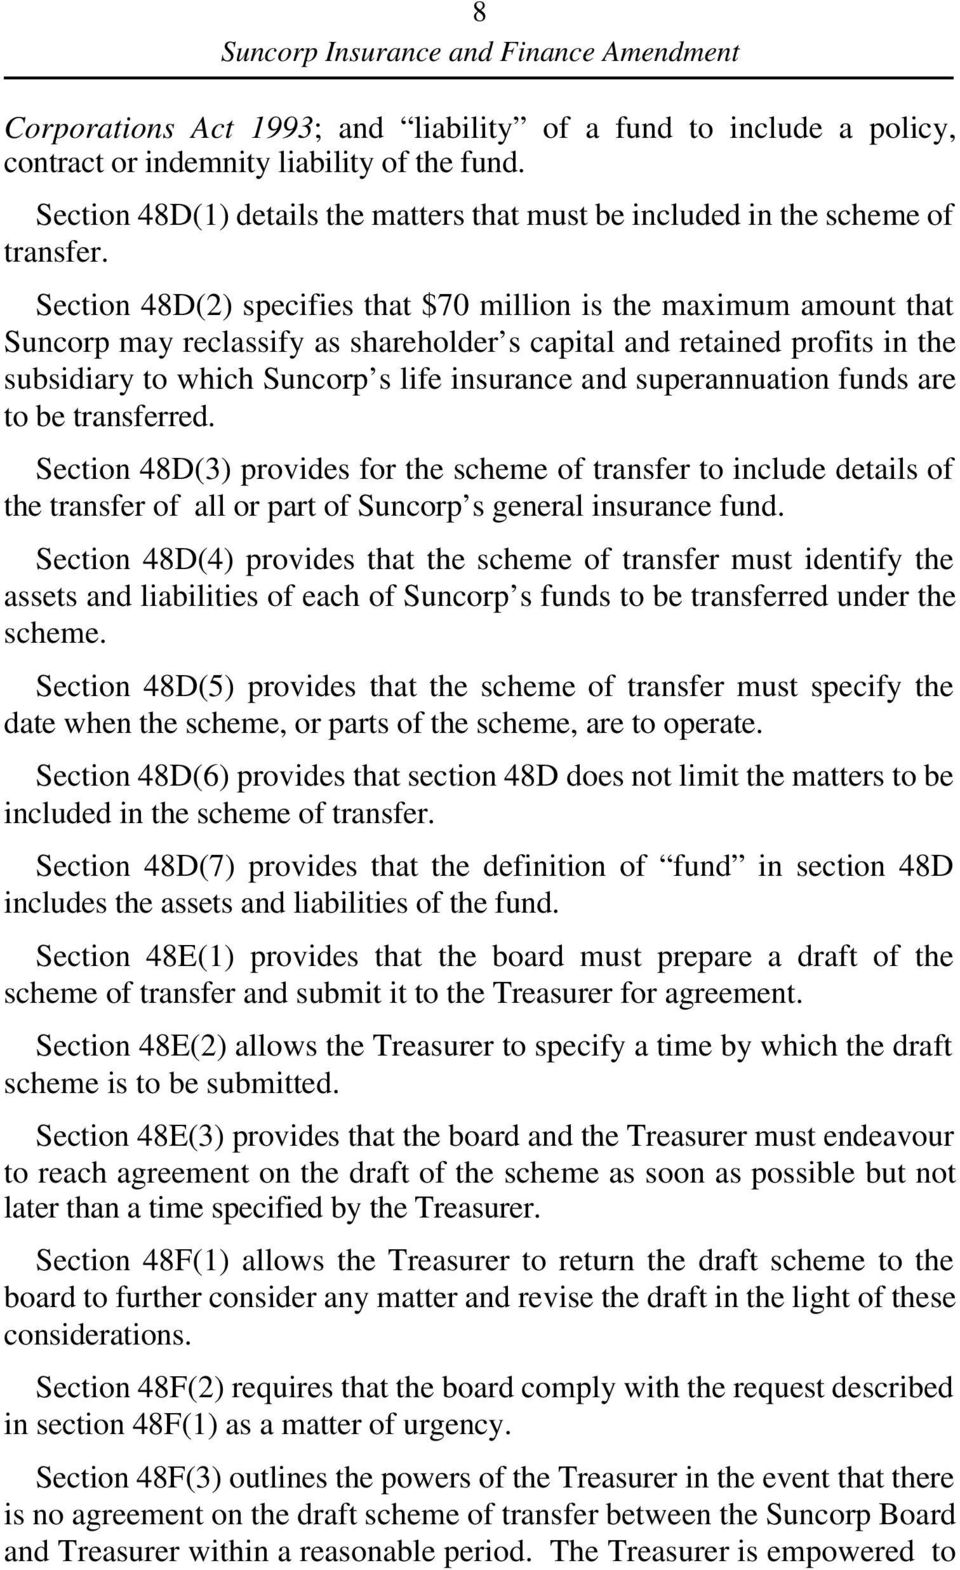 superannuation funds are to be transferred. Section 48D(3) provides for the scheme of transfer to include details of the transfer of all or part of Suncorp s general insurance fund.